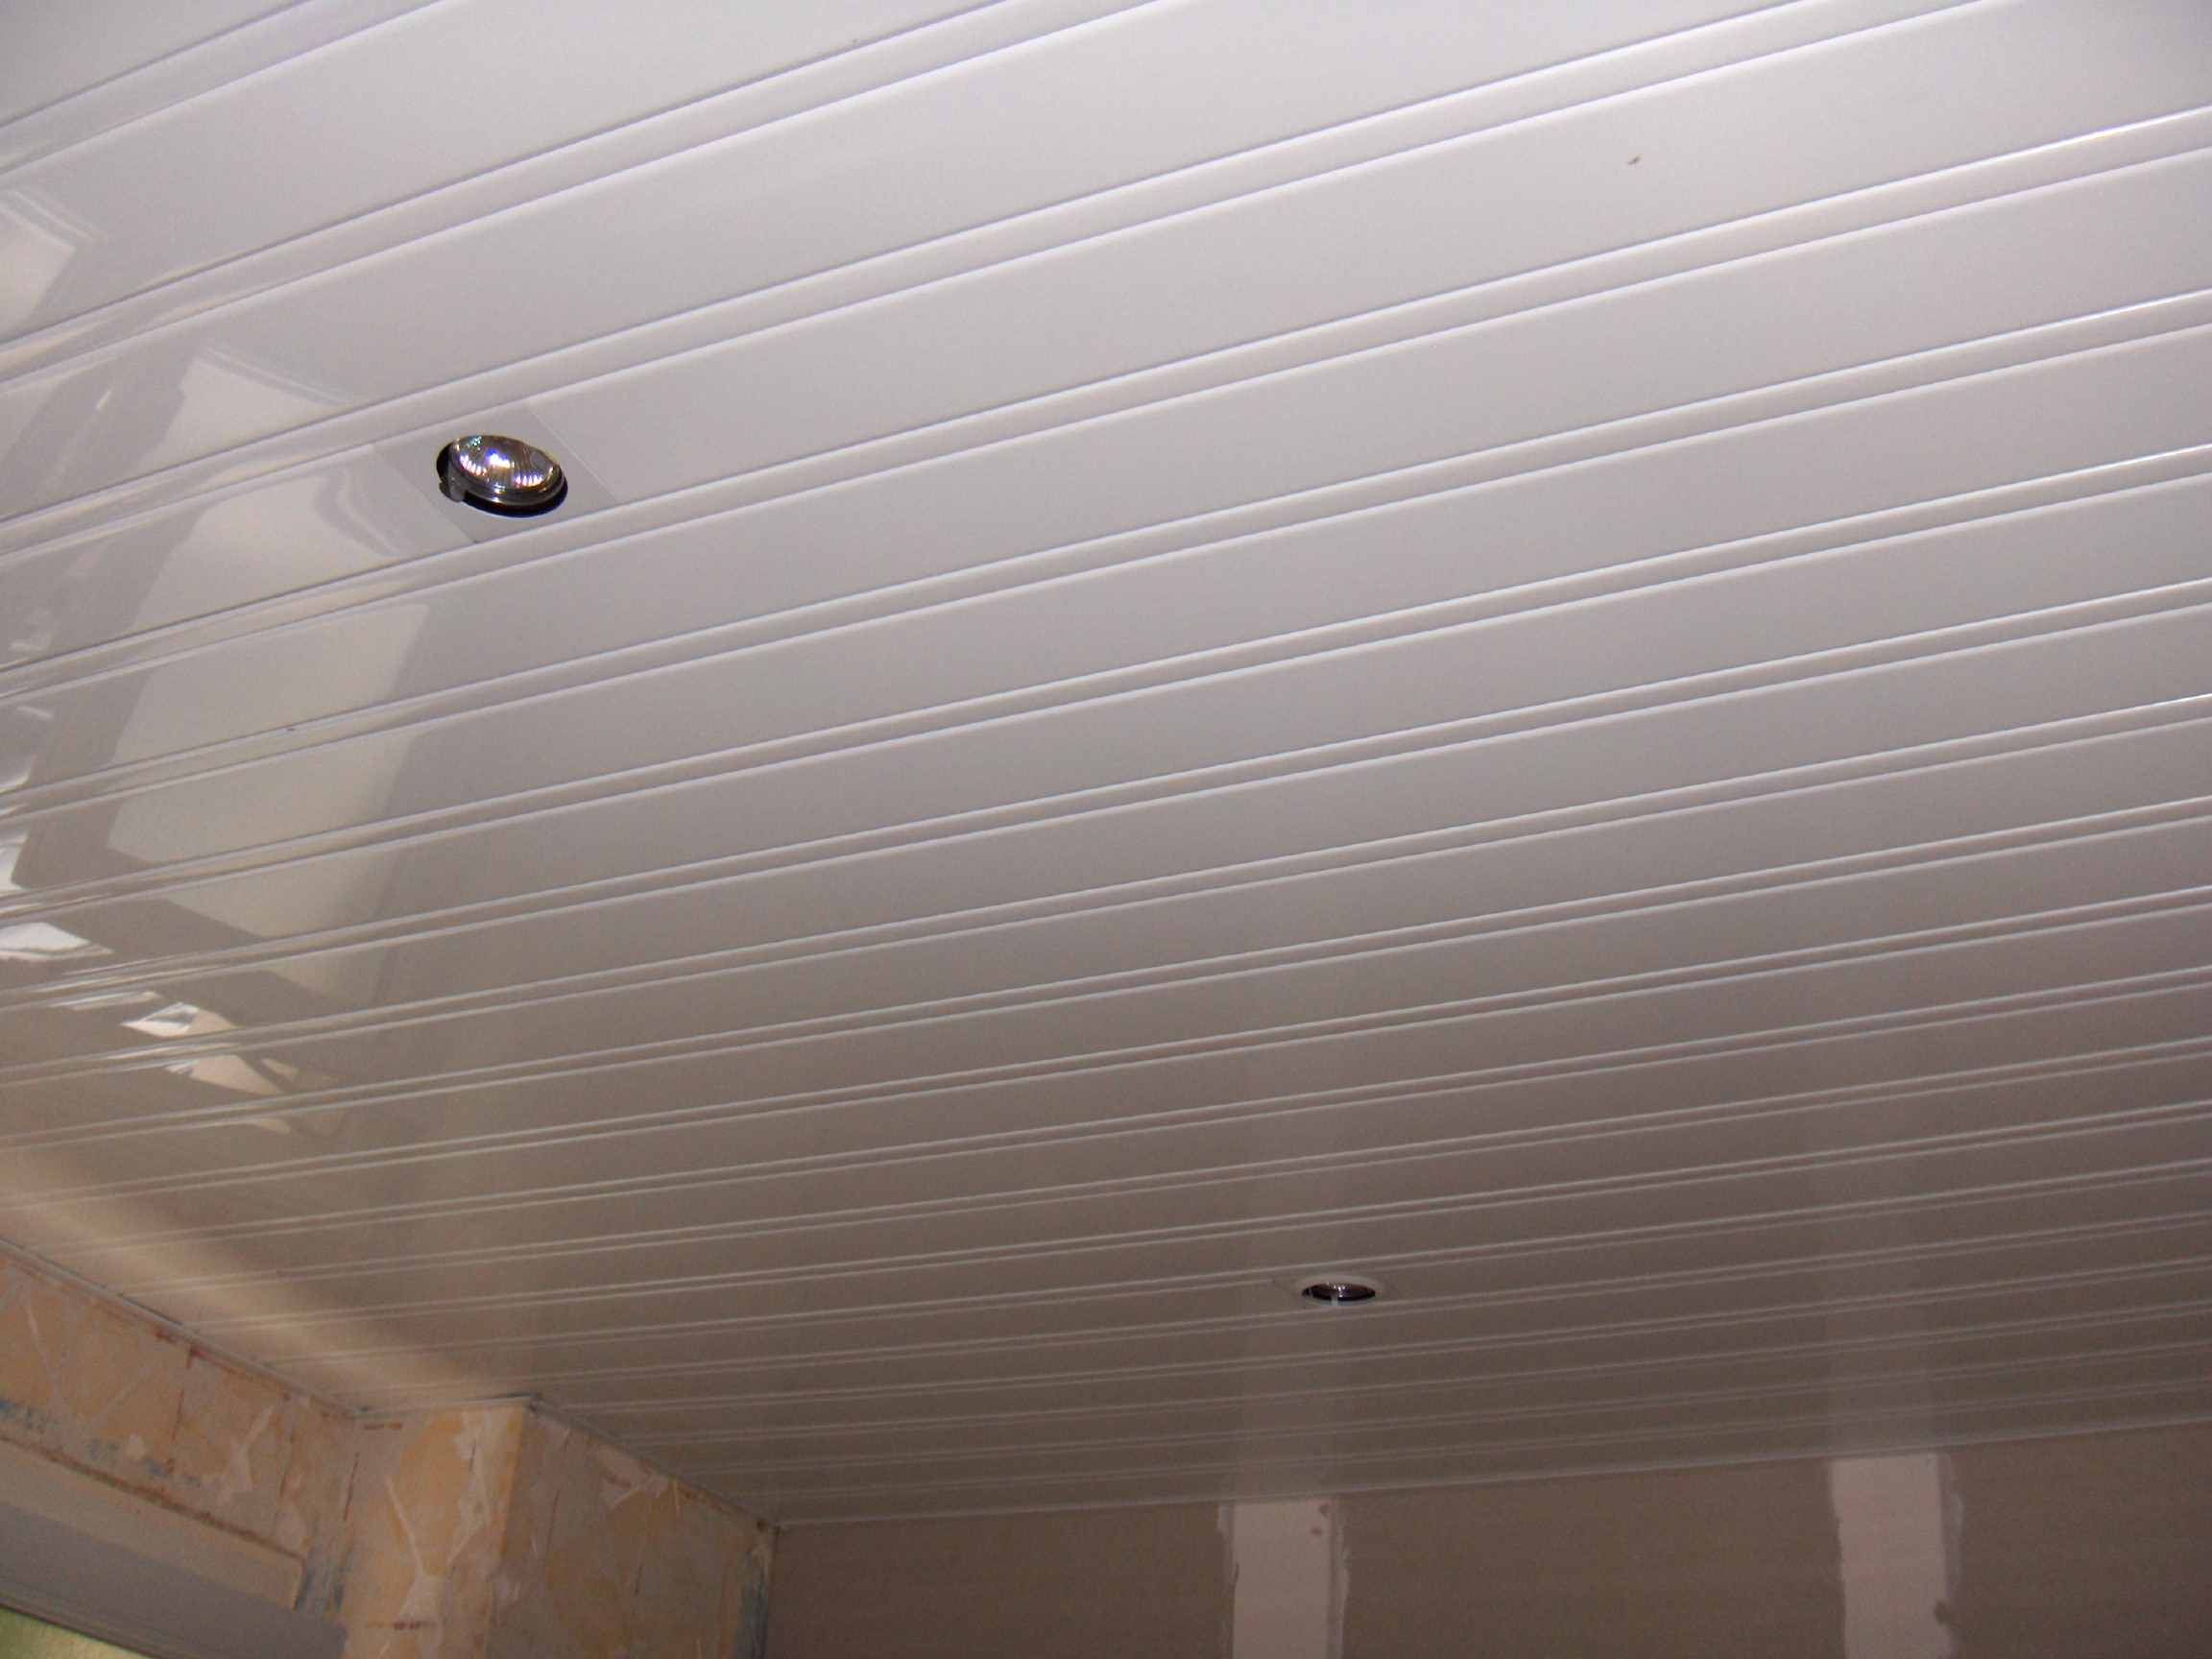 Non class pb multiservices for Peindre un plafond en lambris pvc